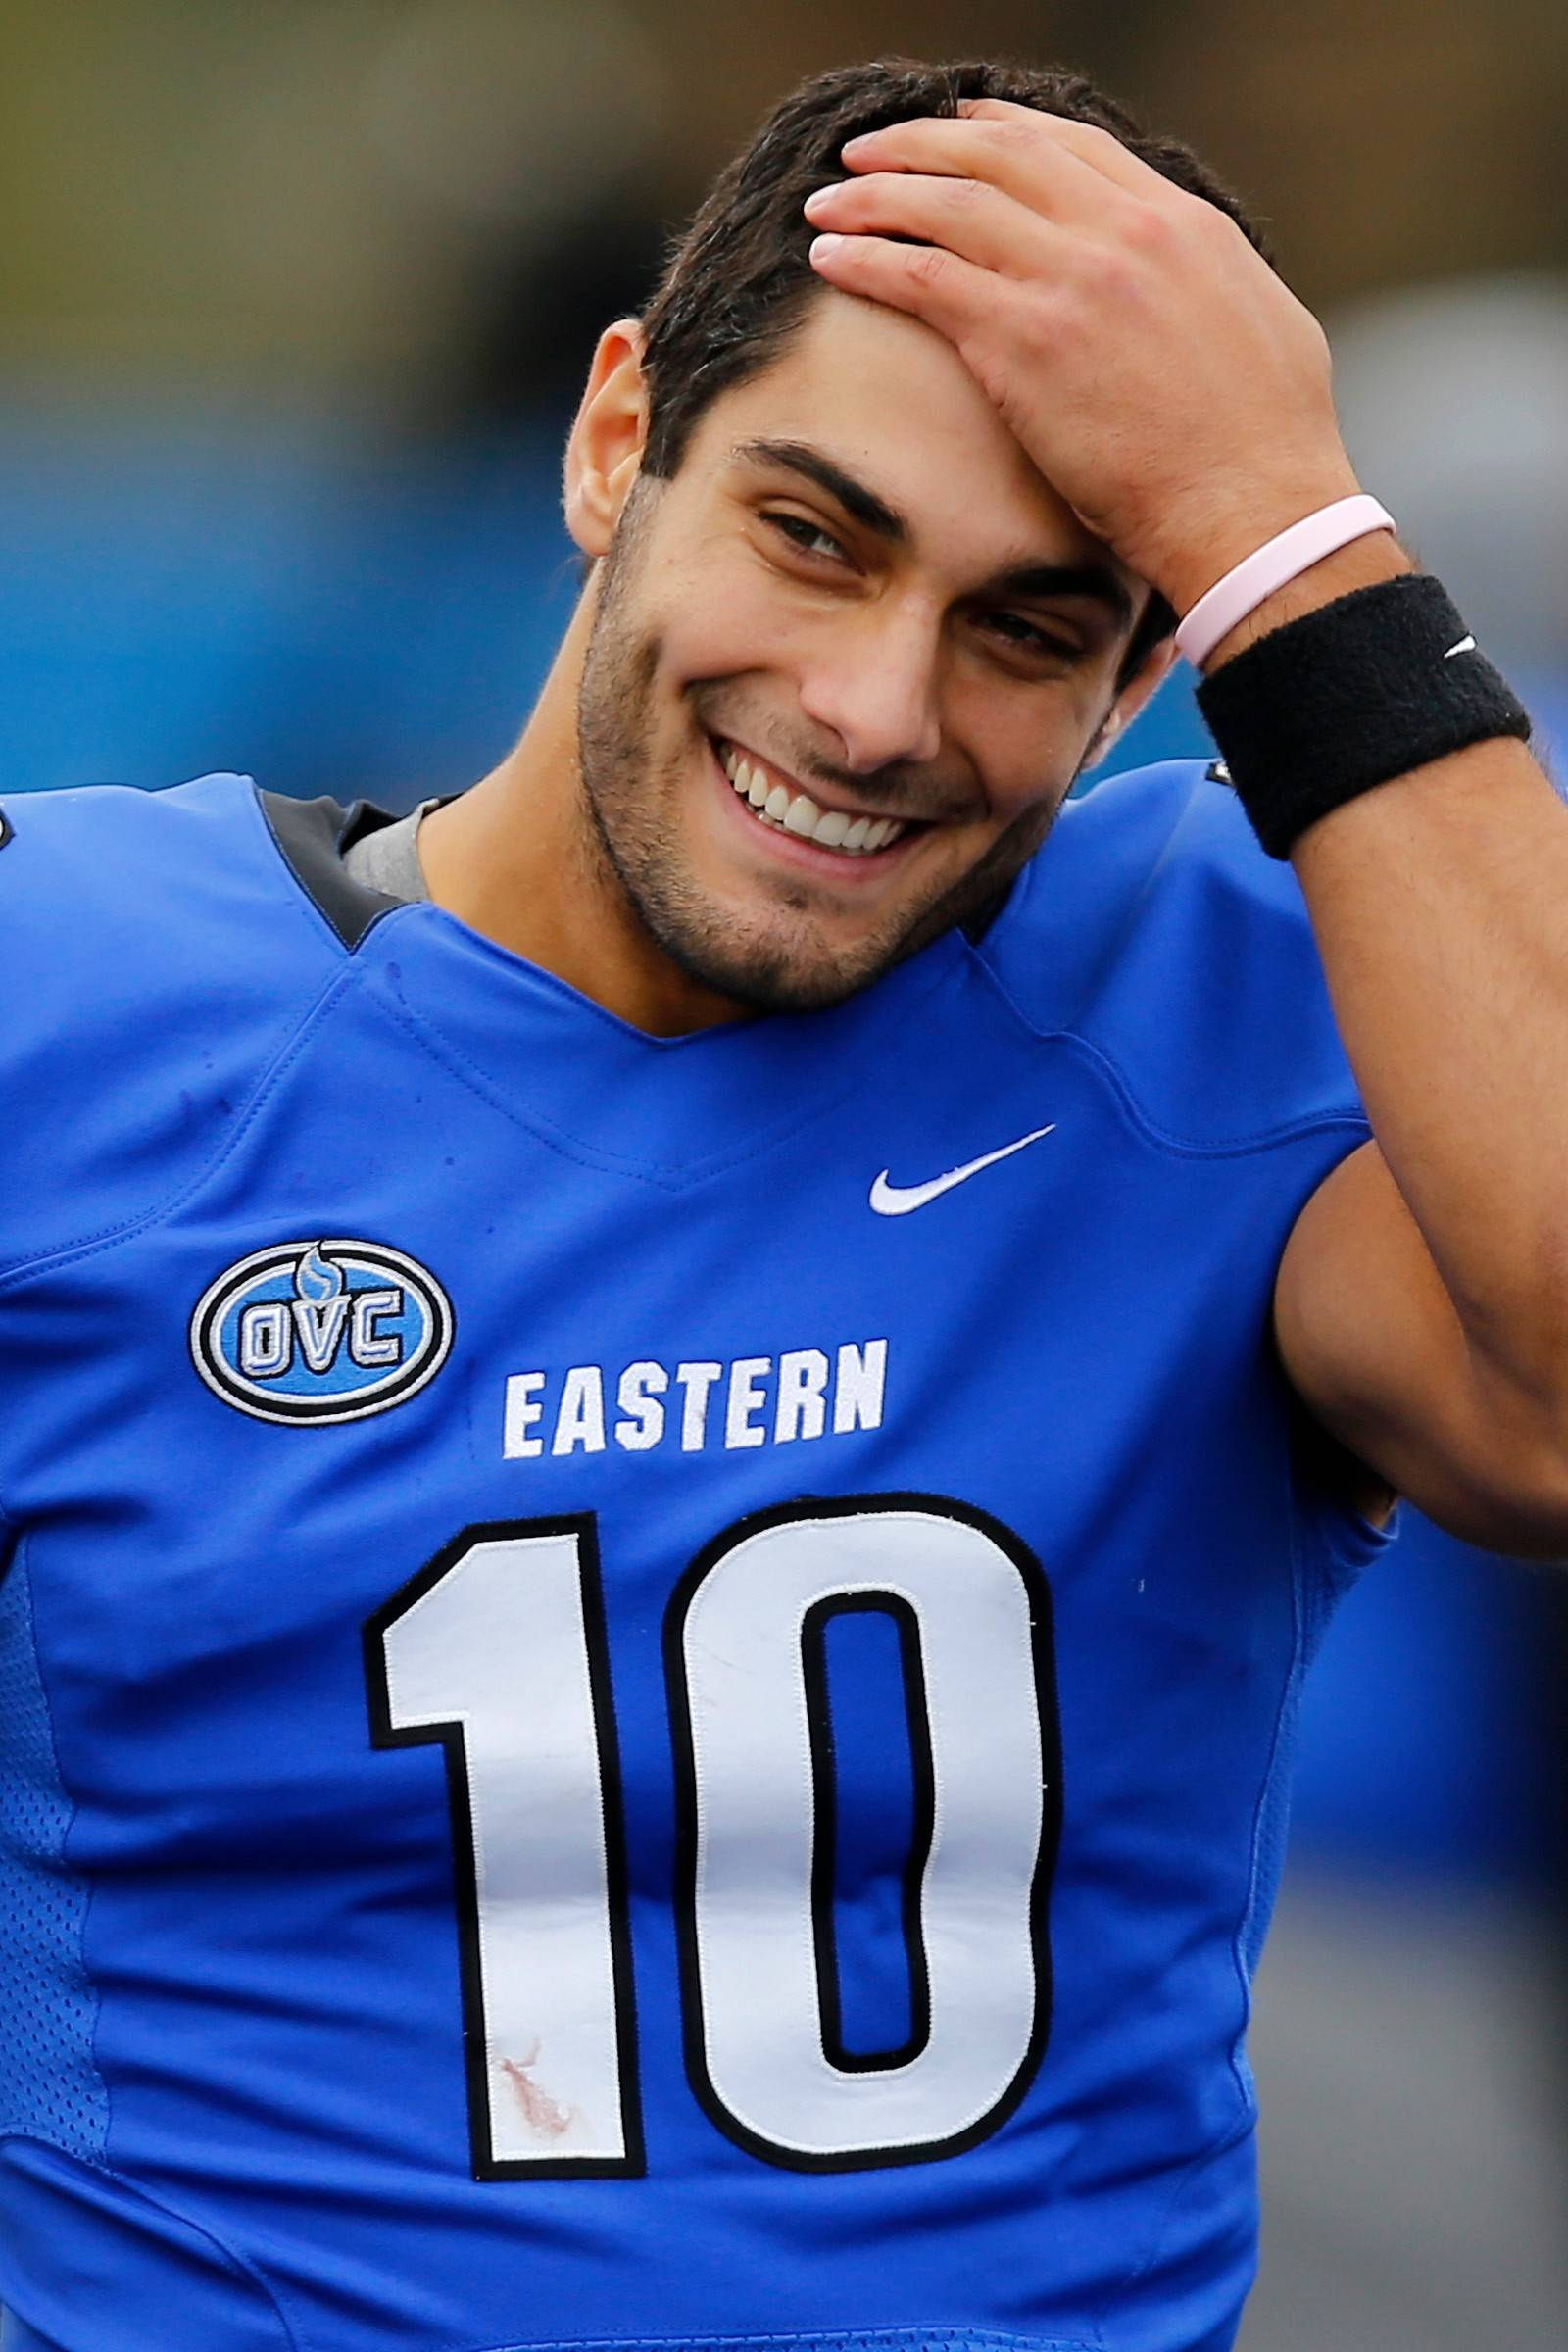 Rolling Meadows High School and Eastern Illinois University standout and Patriots backup quarterback Jimmy Garoppolo will sign a jersey for the winner of a Rolling Meadows National Night Out contest Tuesday. But don't expect to see him there.